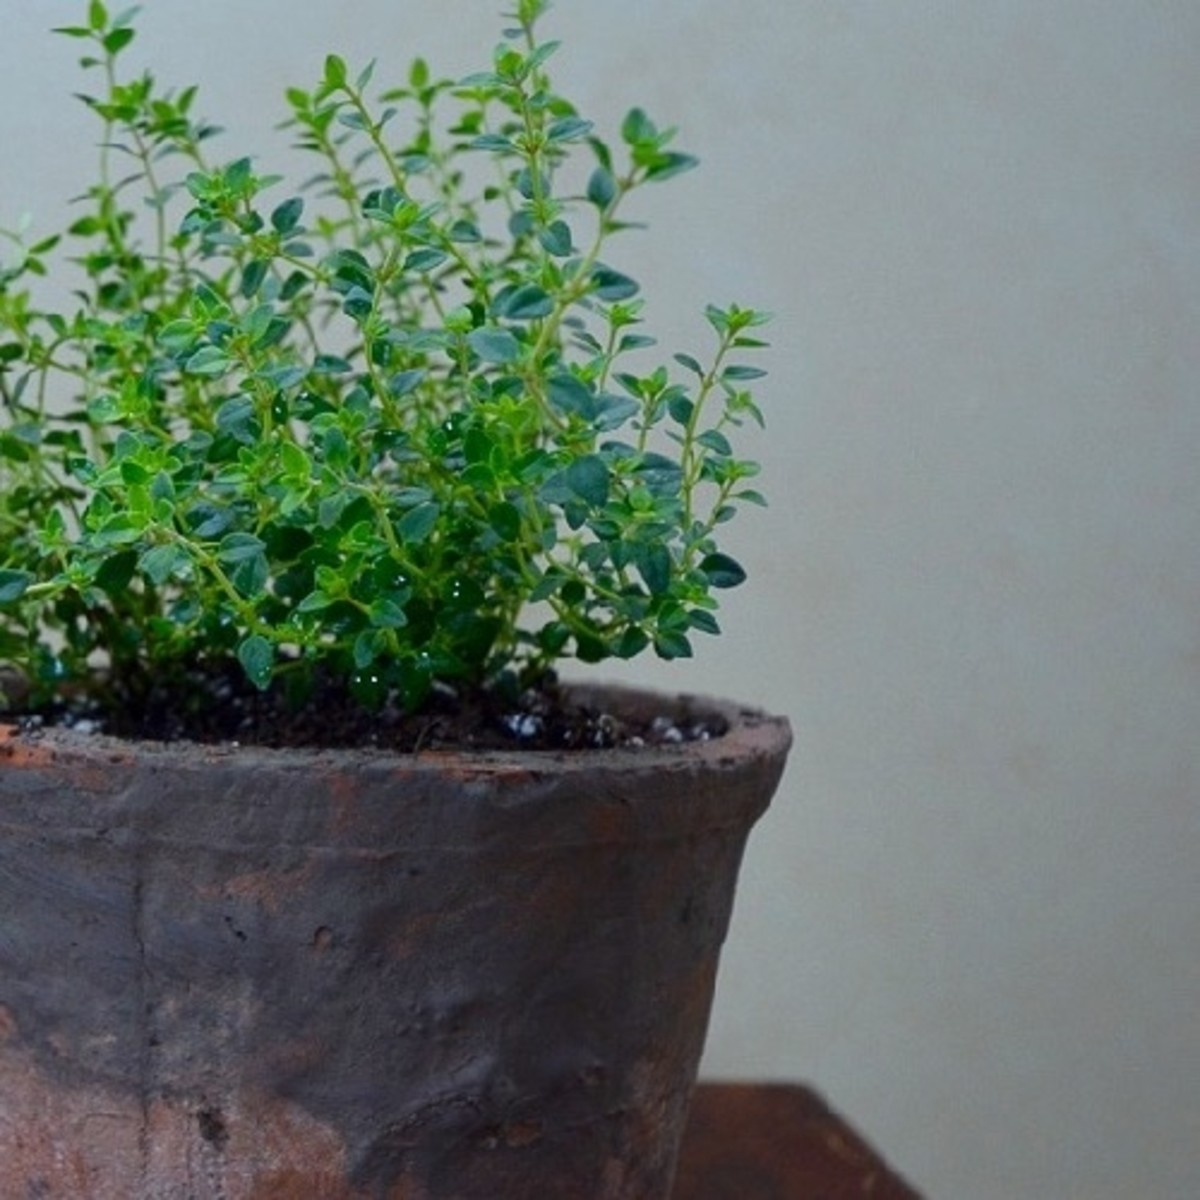 Thyme loves lots of sunlight and is delicious in meats and poultry recipes.